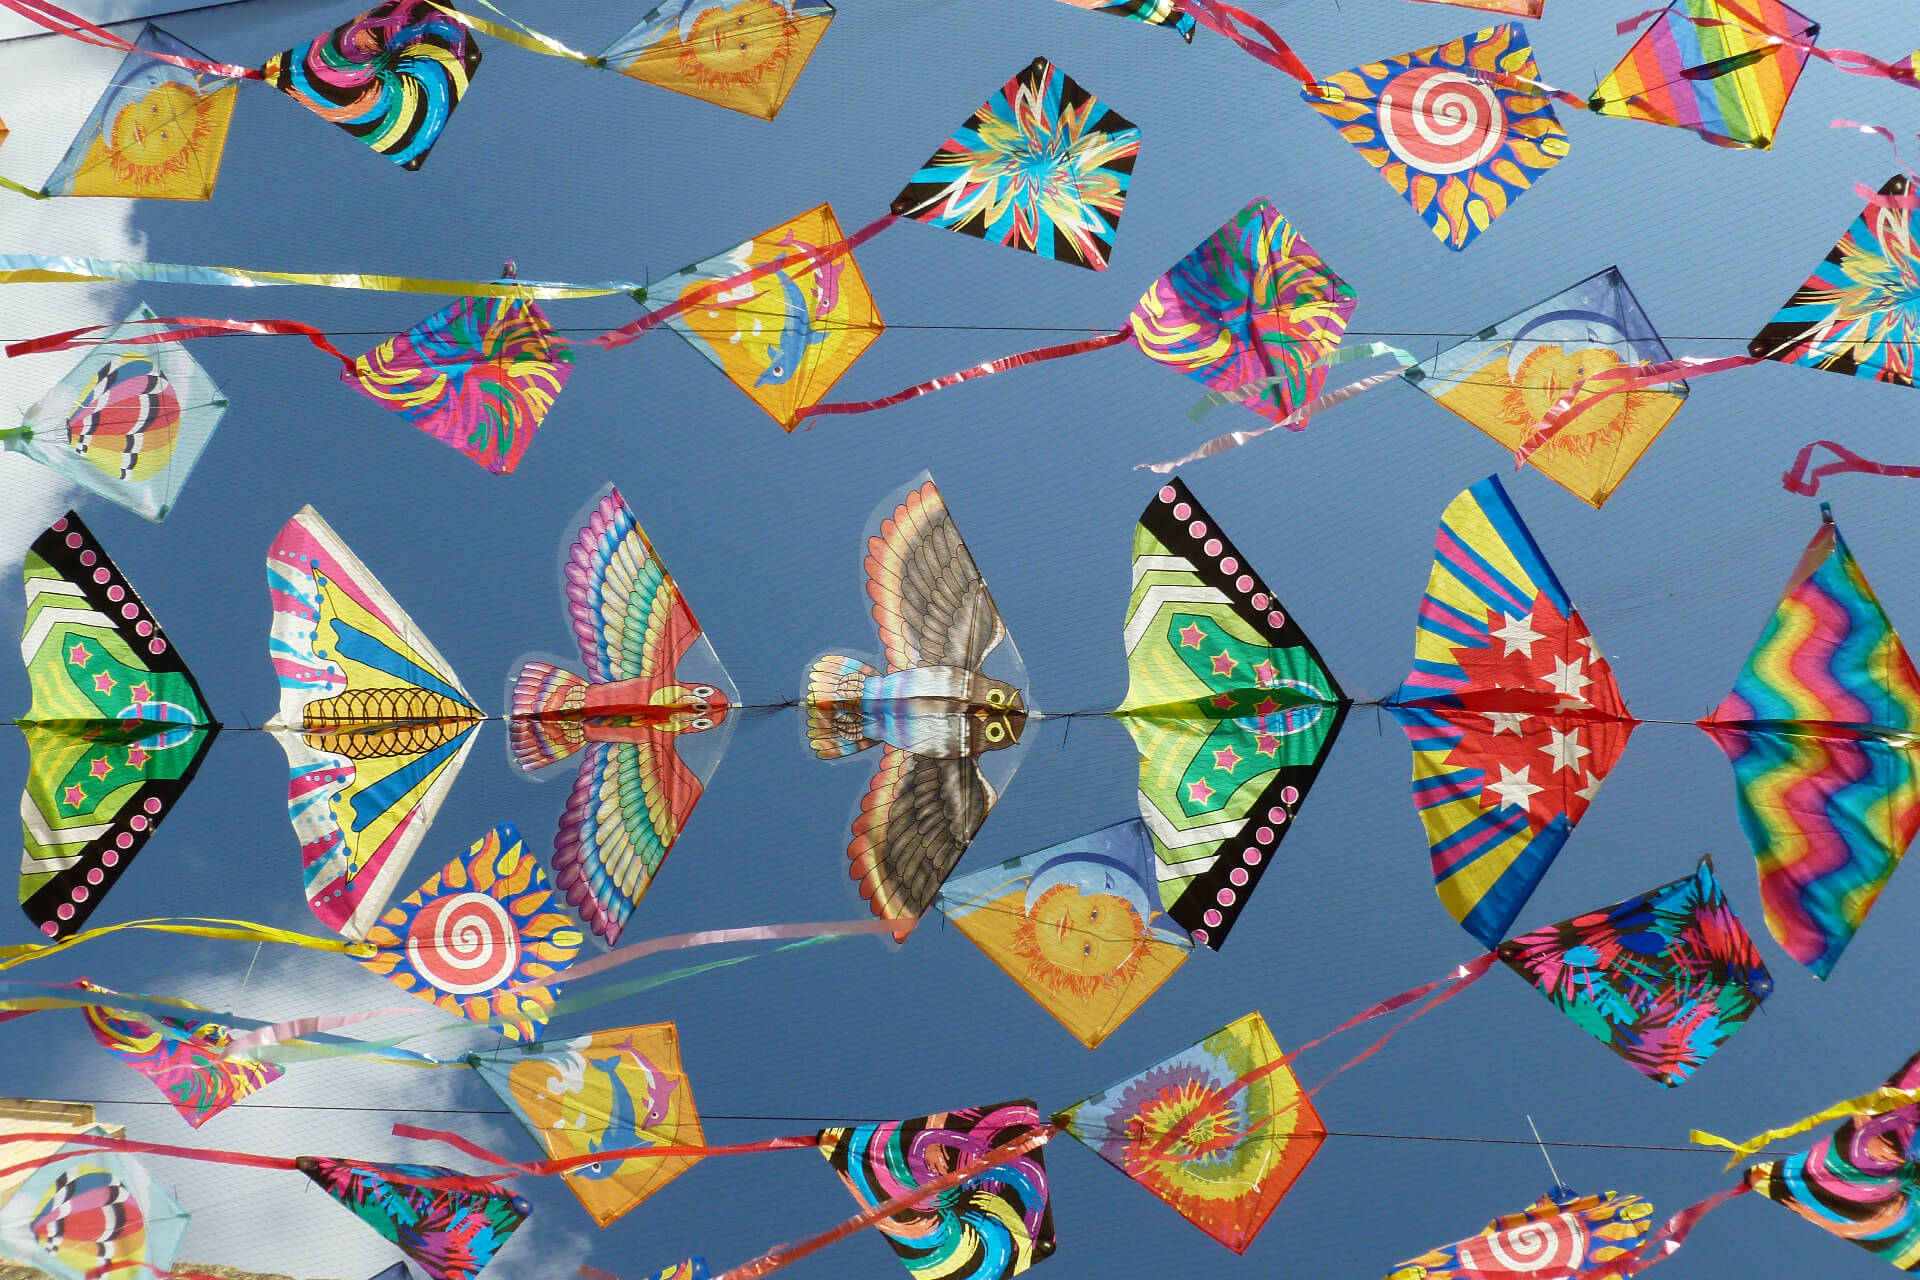 Colorful kites of different sizes suspended on a net